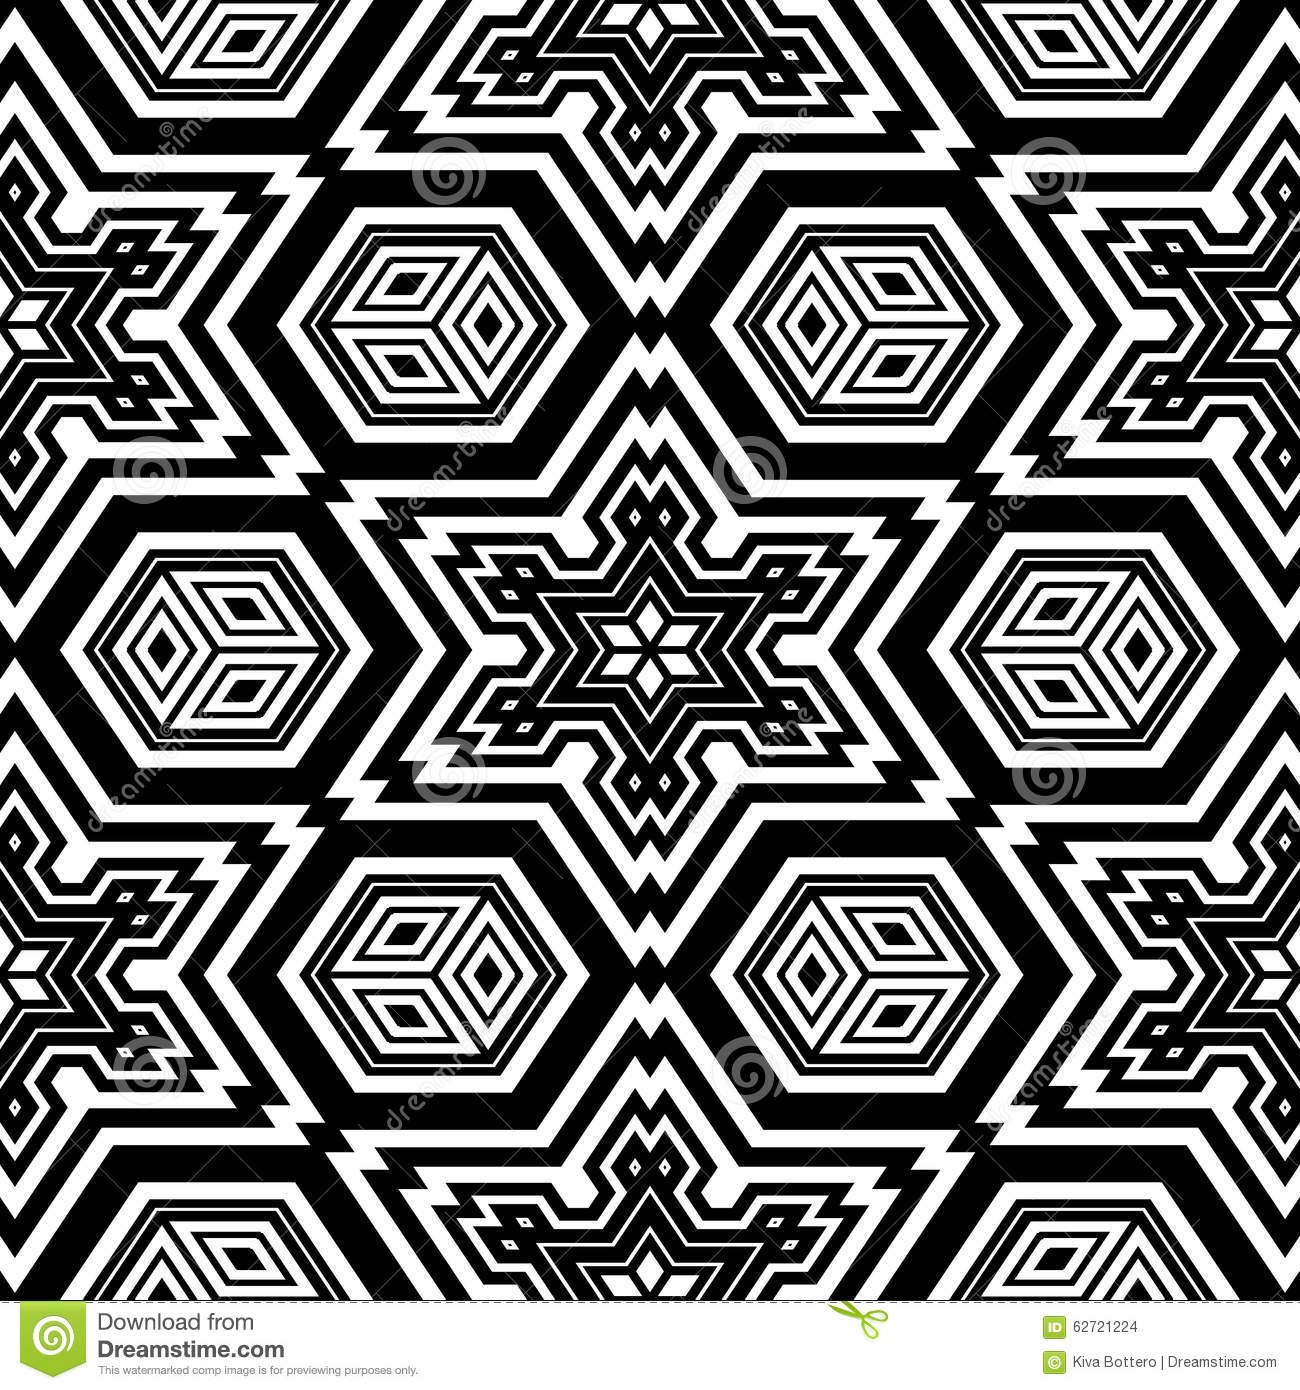 geometric design adult coloring page stock illustration